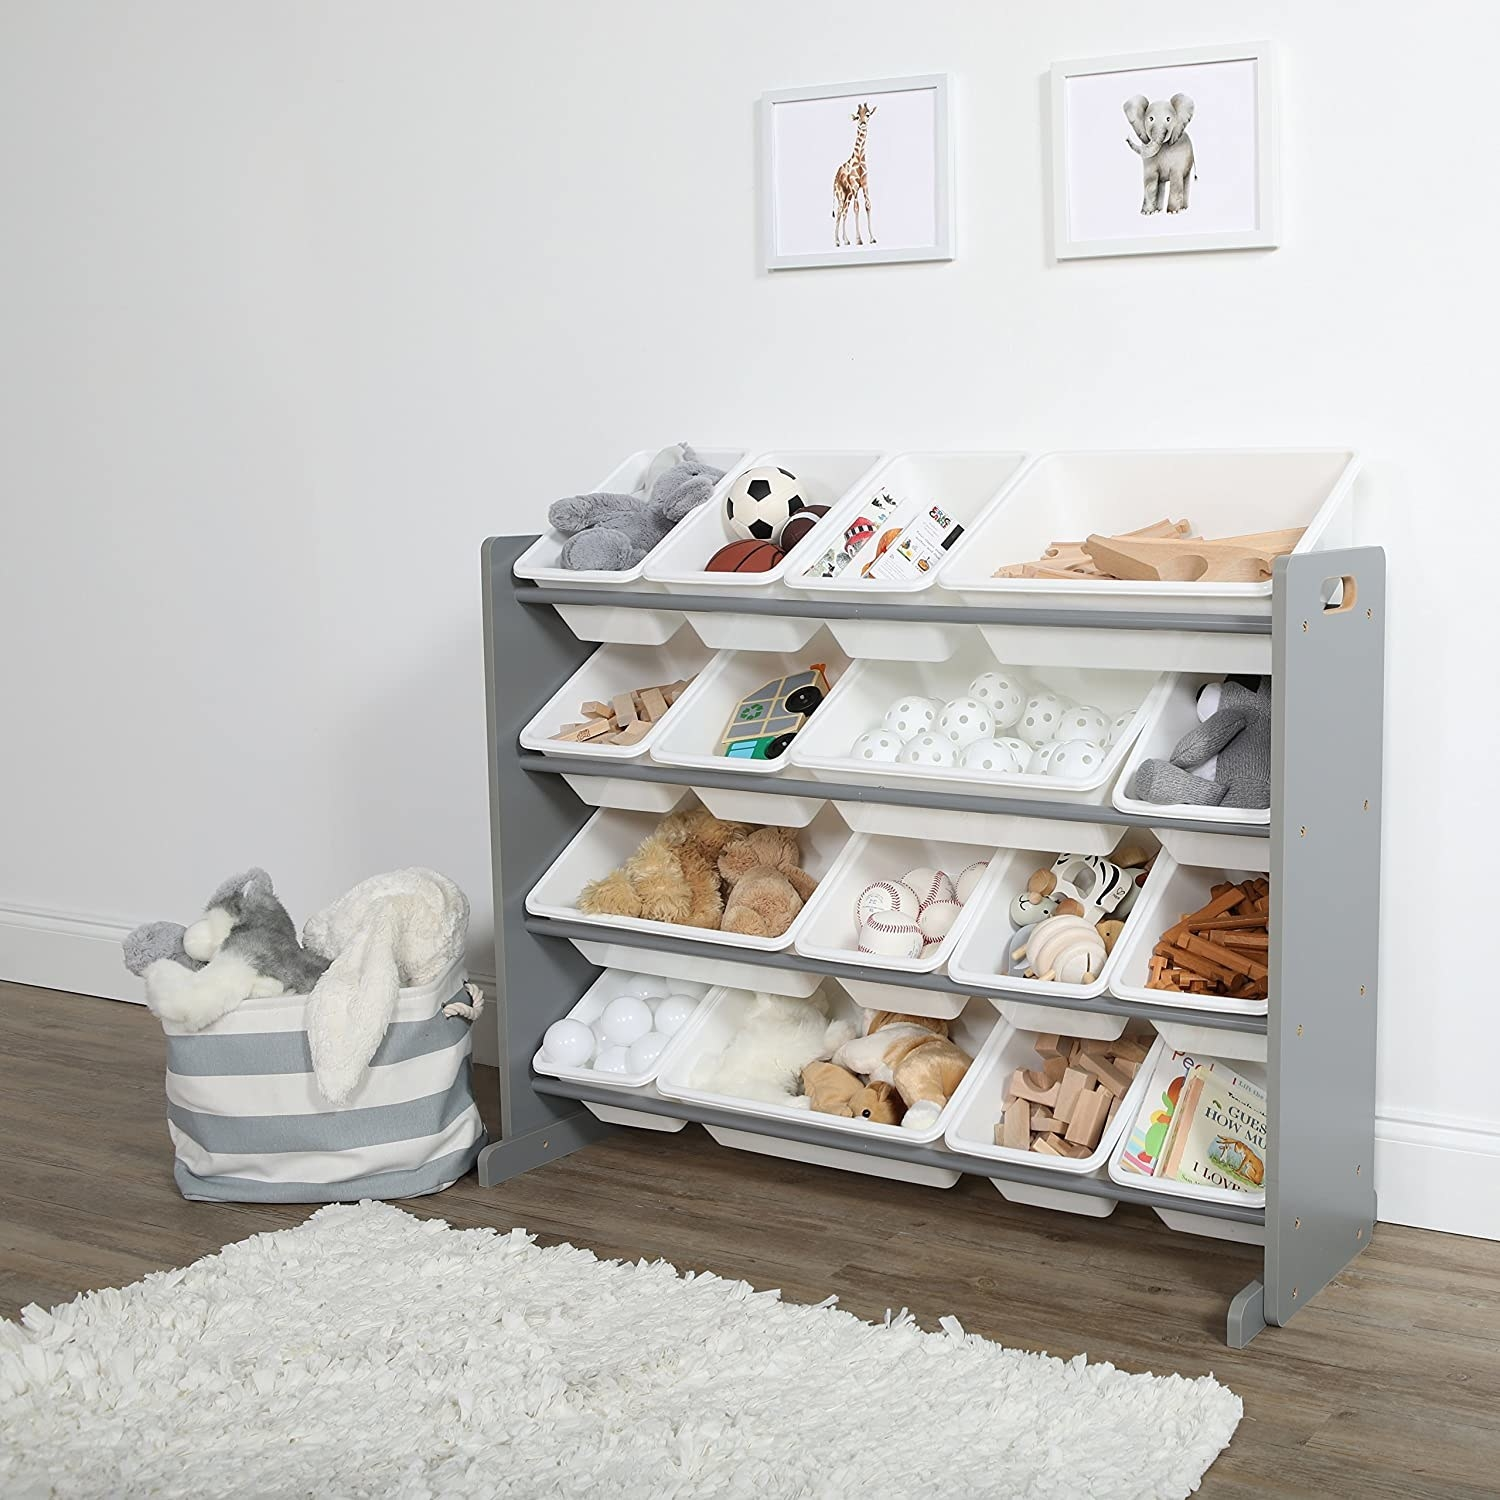 A large bookcase frame with four shelf units, each with four plastic containers of varying sizes. The containers are at an angle, making them easy for children to see inside.